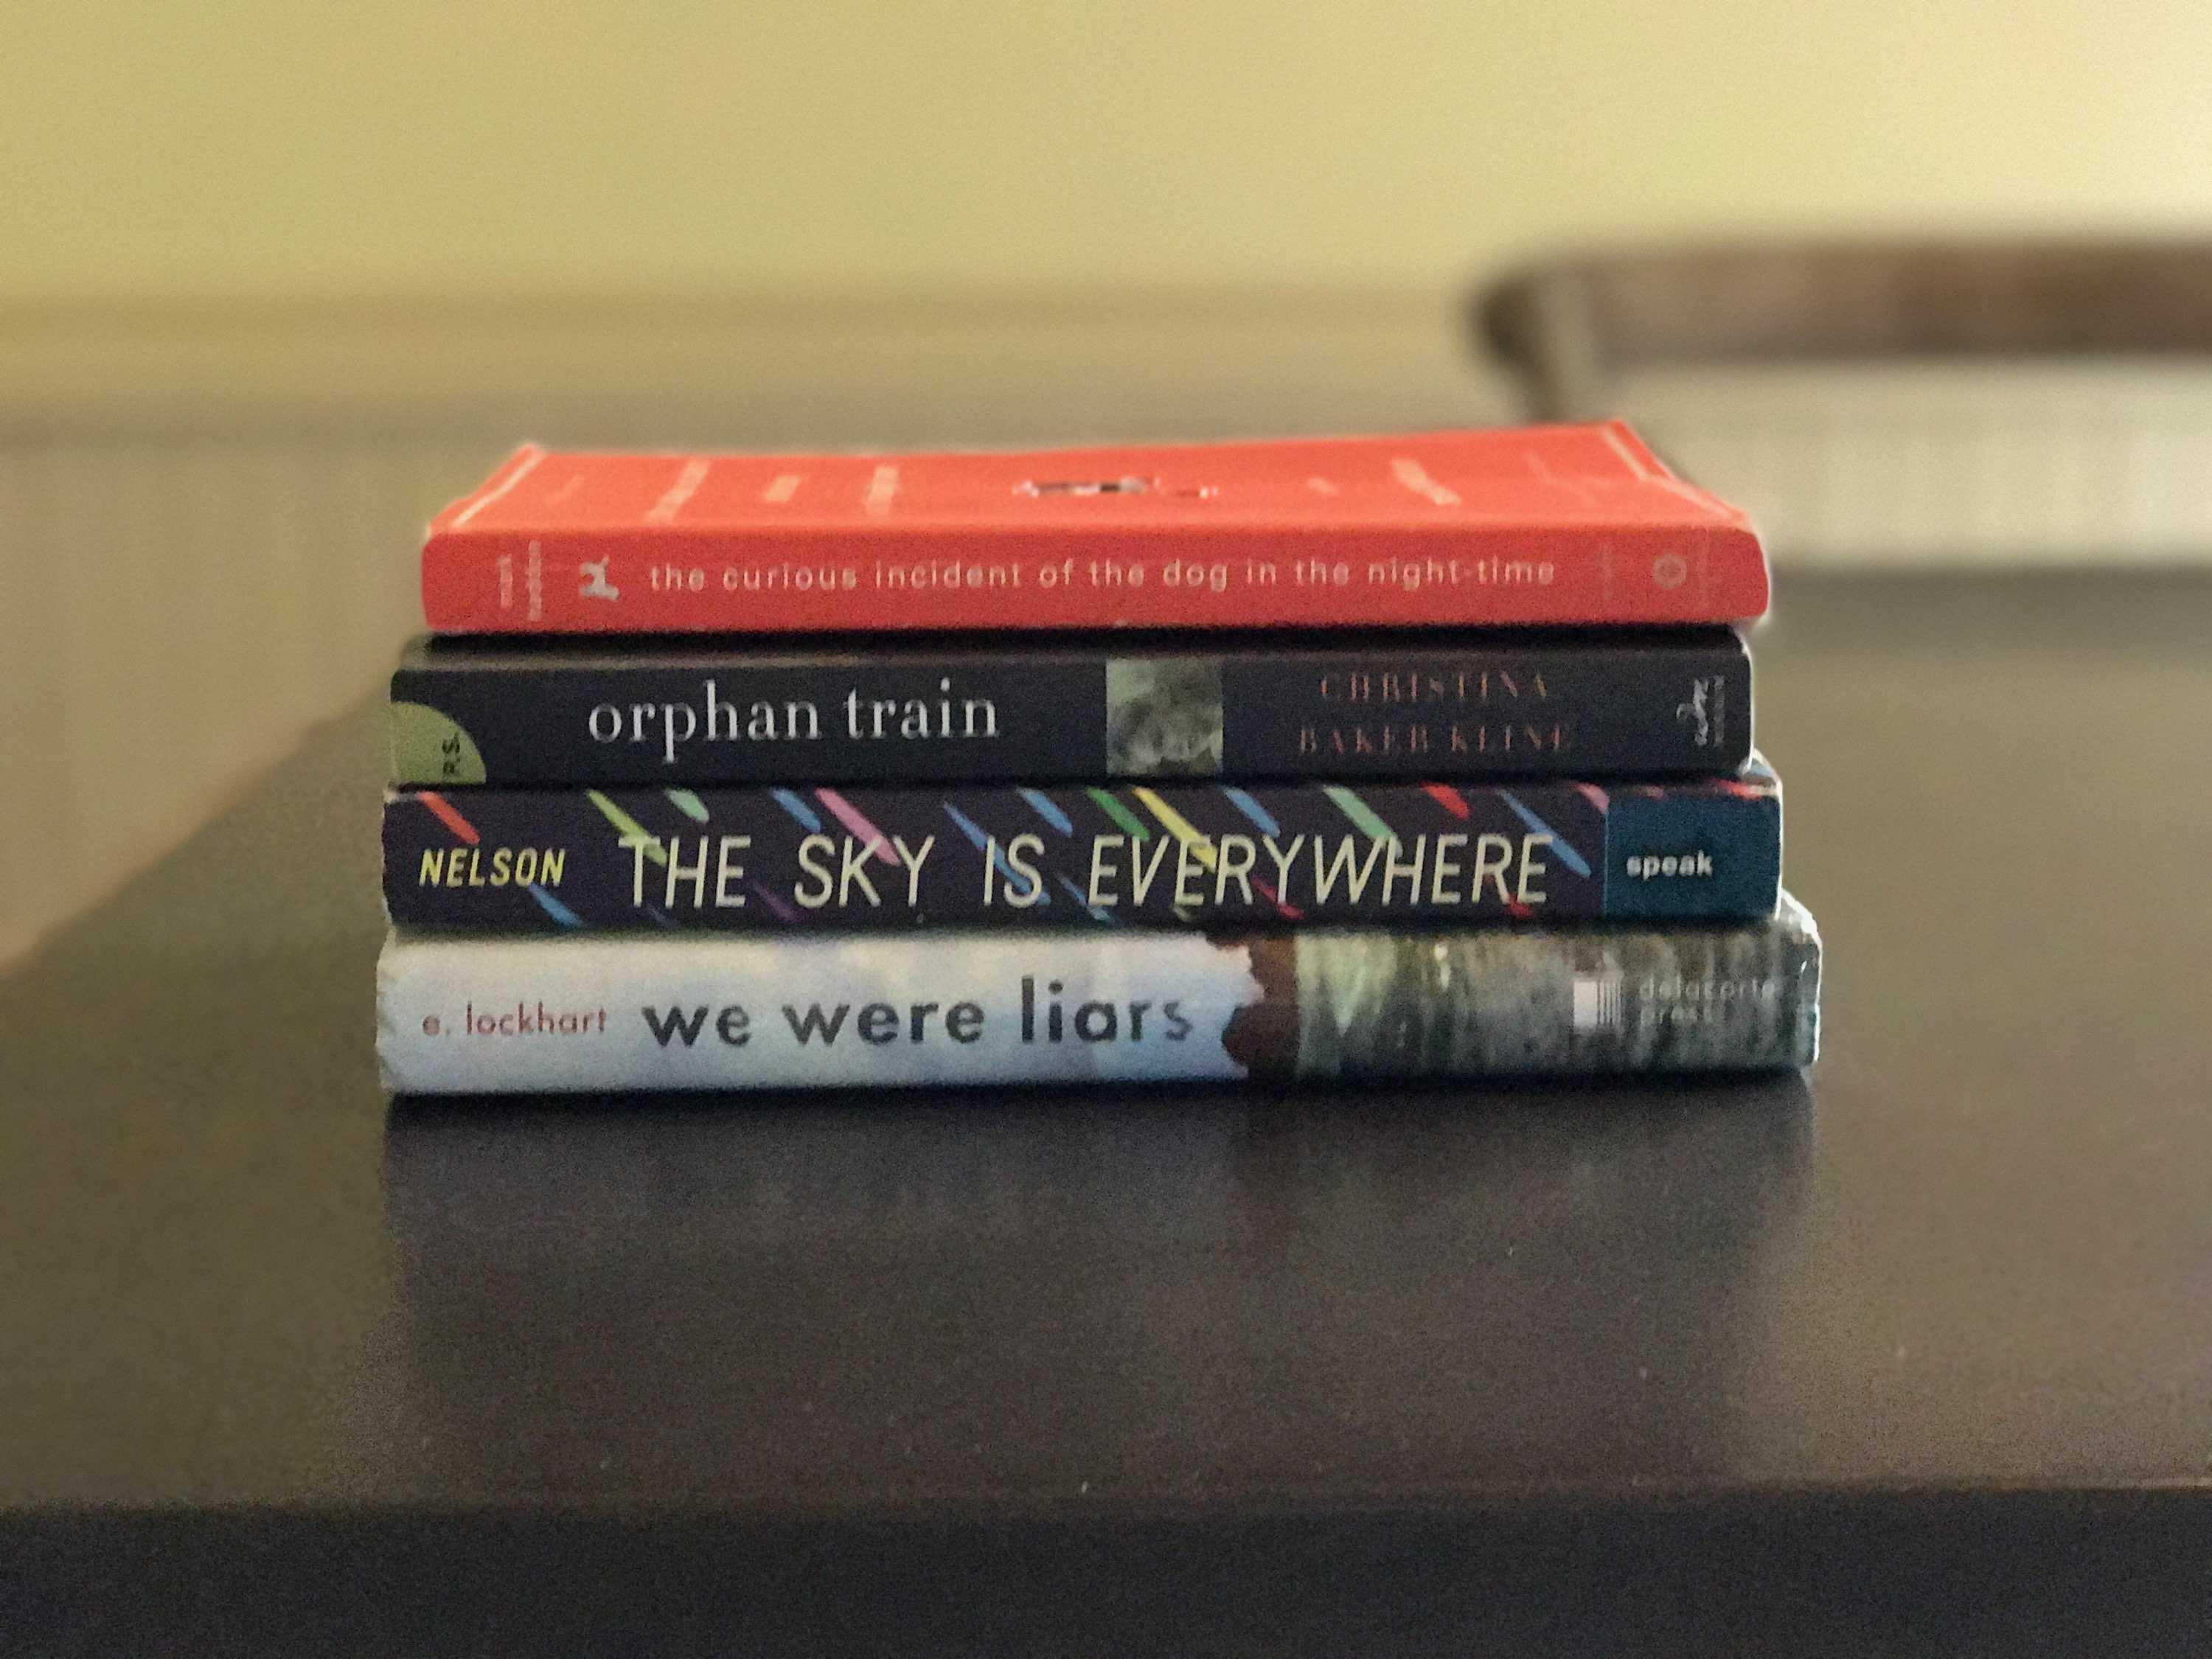 The Curious Incident of the Dog in the Night-Time, Orphan Train, The Sky is Everywhere, and We Were Liars are all must reads for teens. The books tackle real life dilemmas while weaving fanciful plots for readers to enjoy. Photo by Amelia Vanyo.